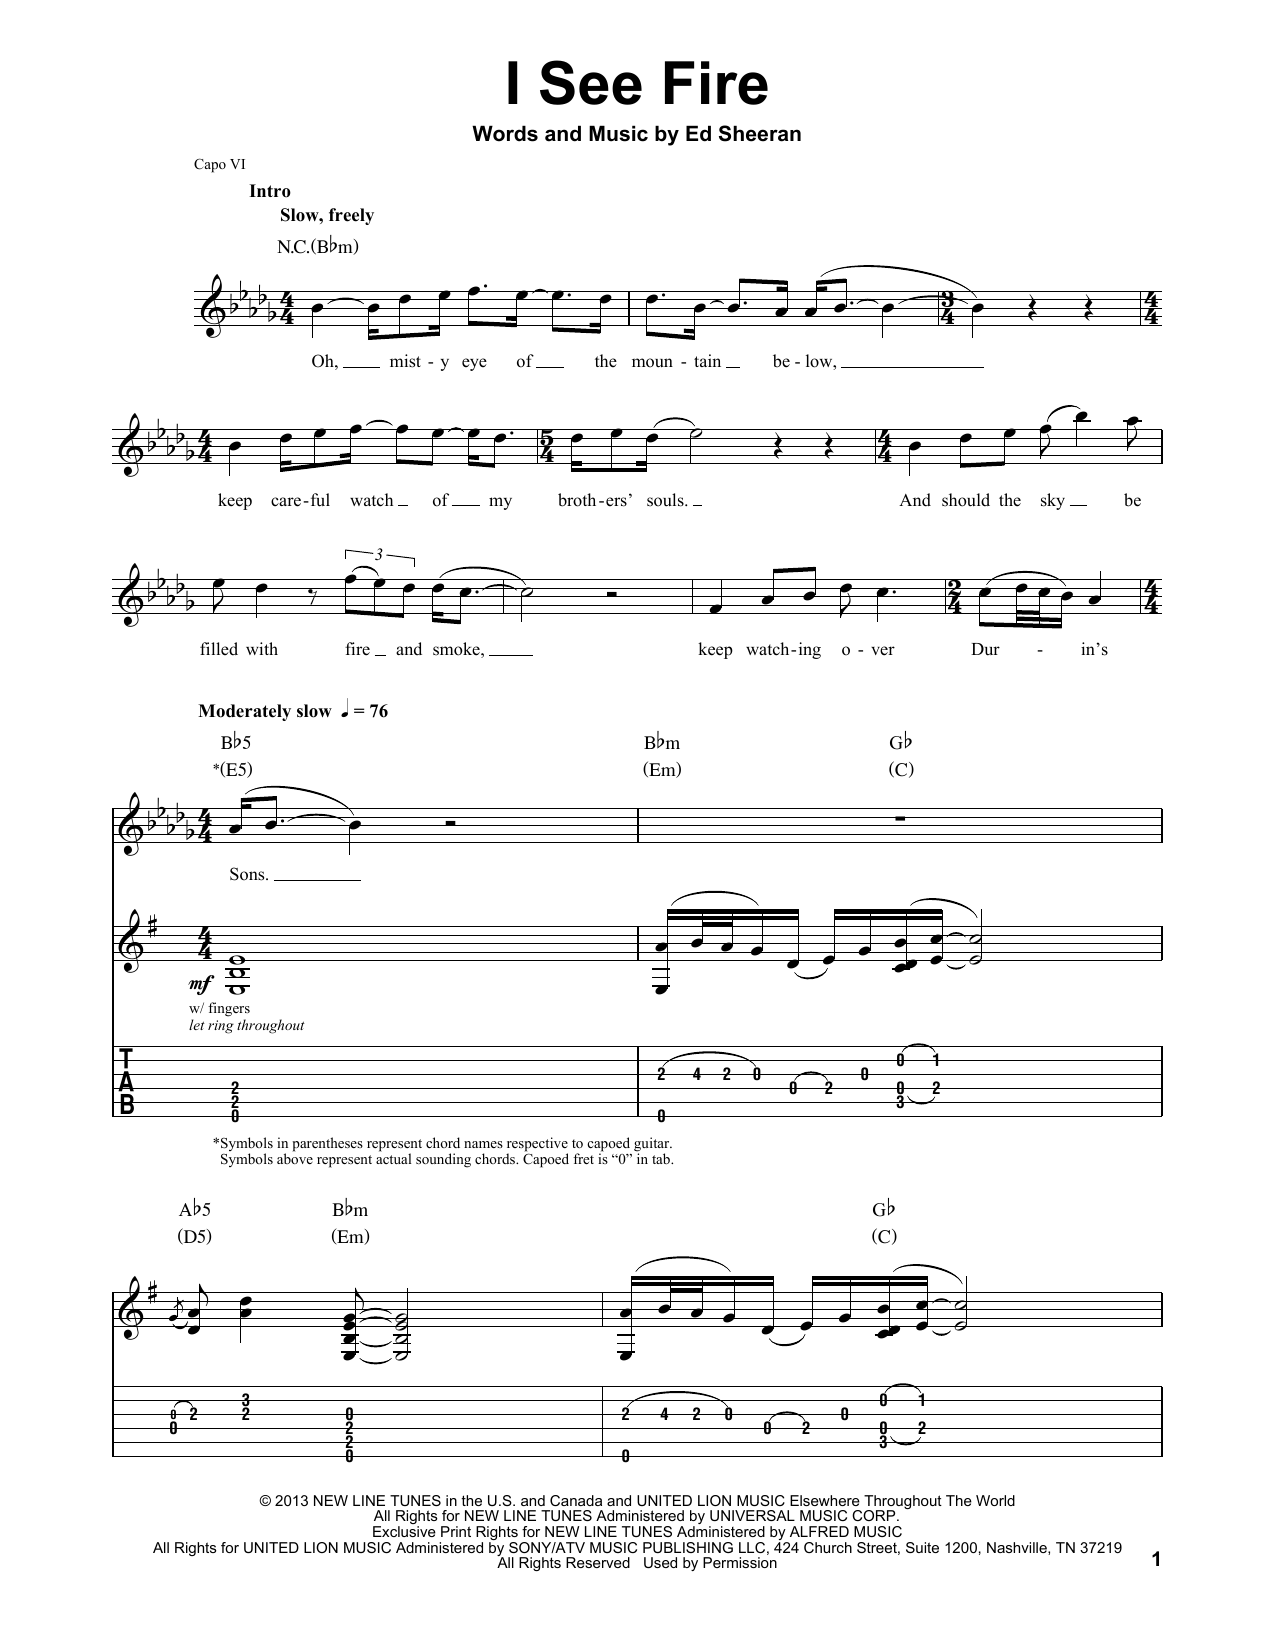 Ed Sheeran I See Fire (from The Hobbit) sheet music notes and chords. Download Printable PDF.